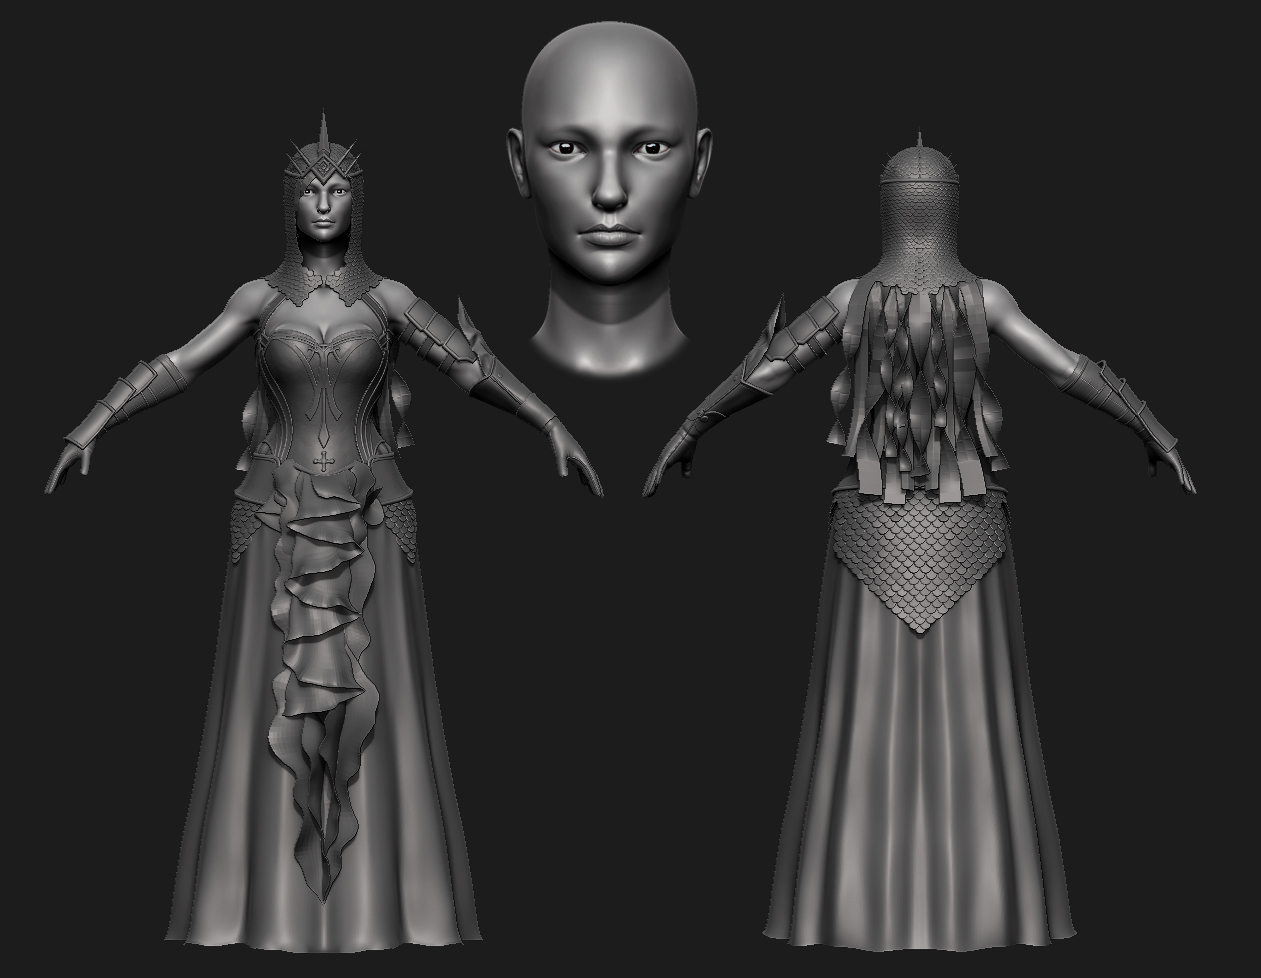 wip_white_queen_3_by_stevston89-d6s98fo.jpg